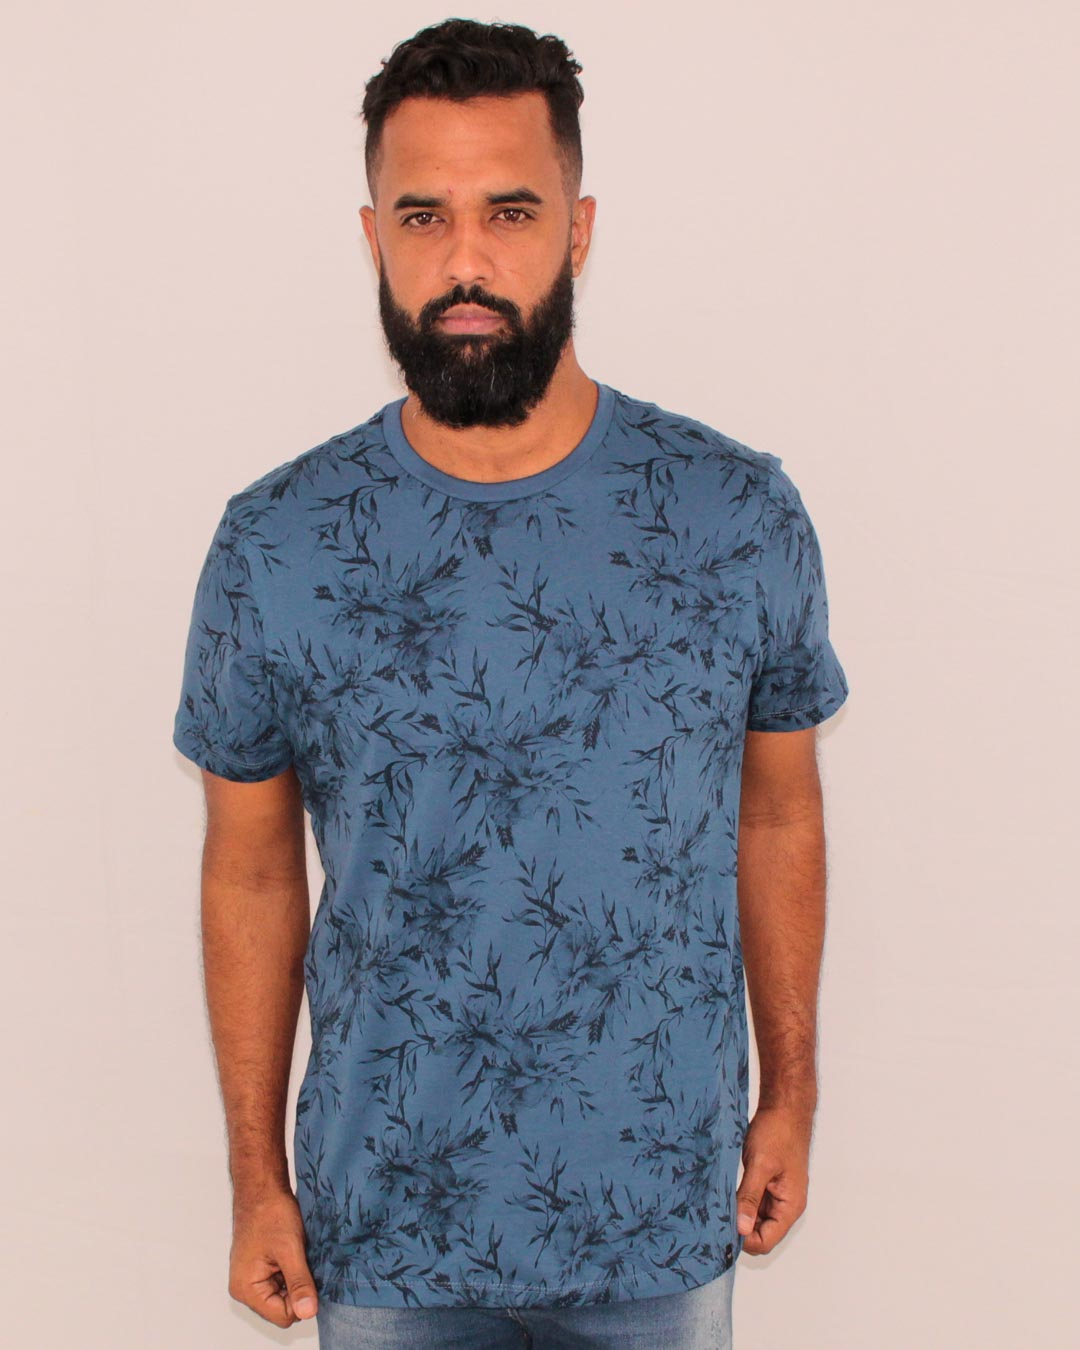 CAMISETA ESTAMPADA ALL FREE FLORAIS AZUL